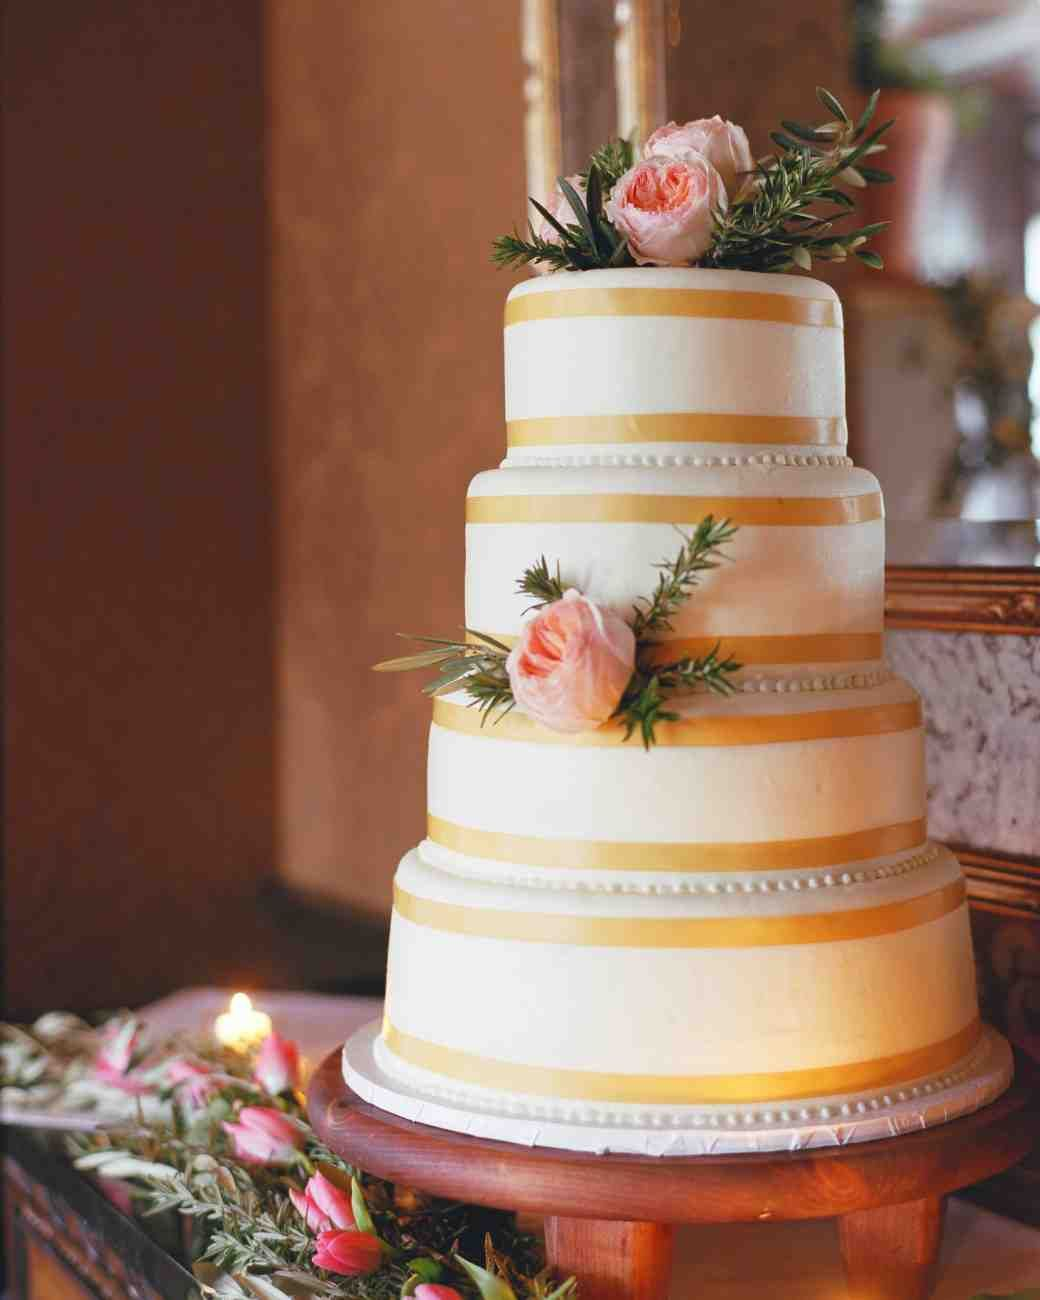 Wedding Cakes Inspired By China Patterns: 44 Wedding Cakes With Fresh Flowers